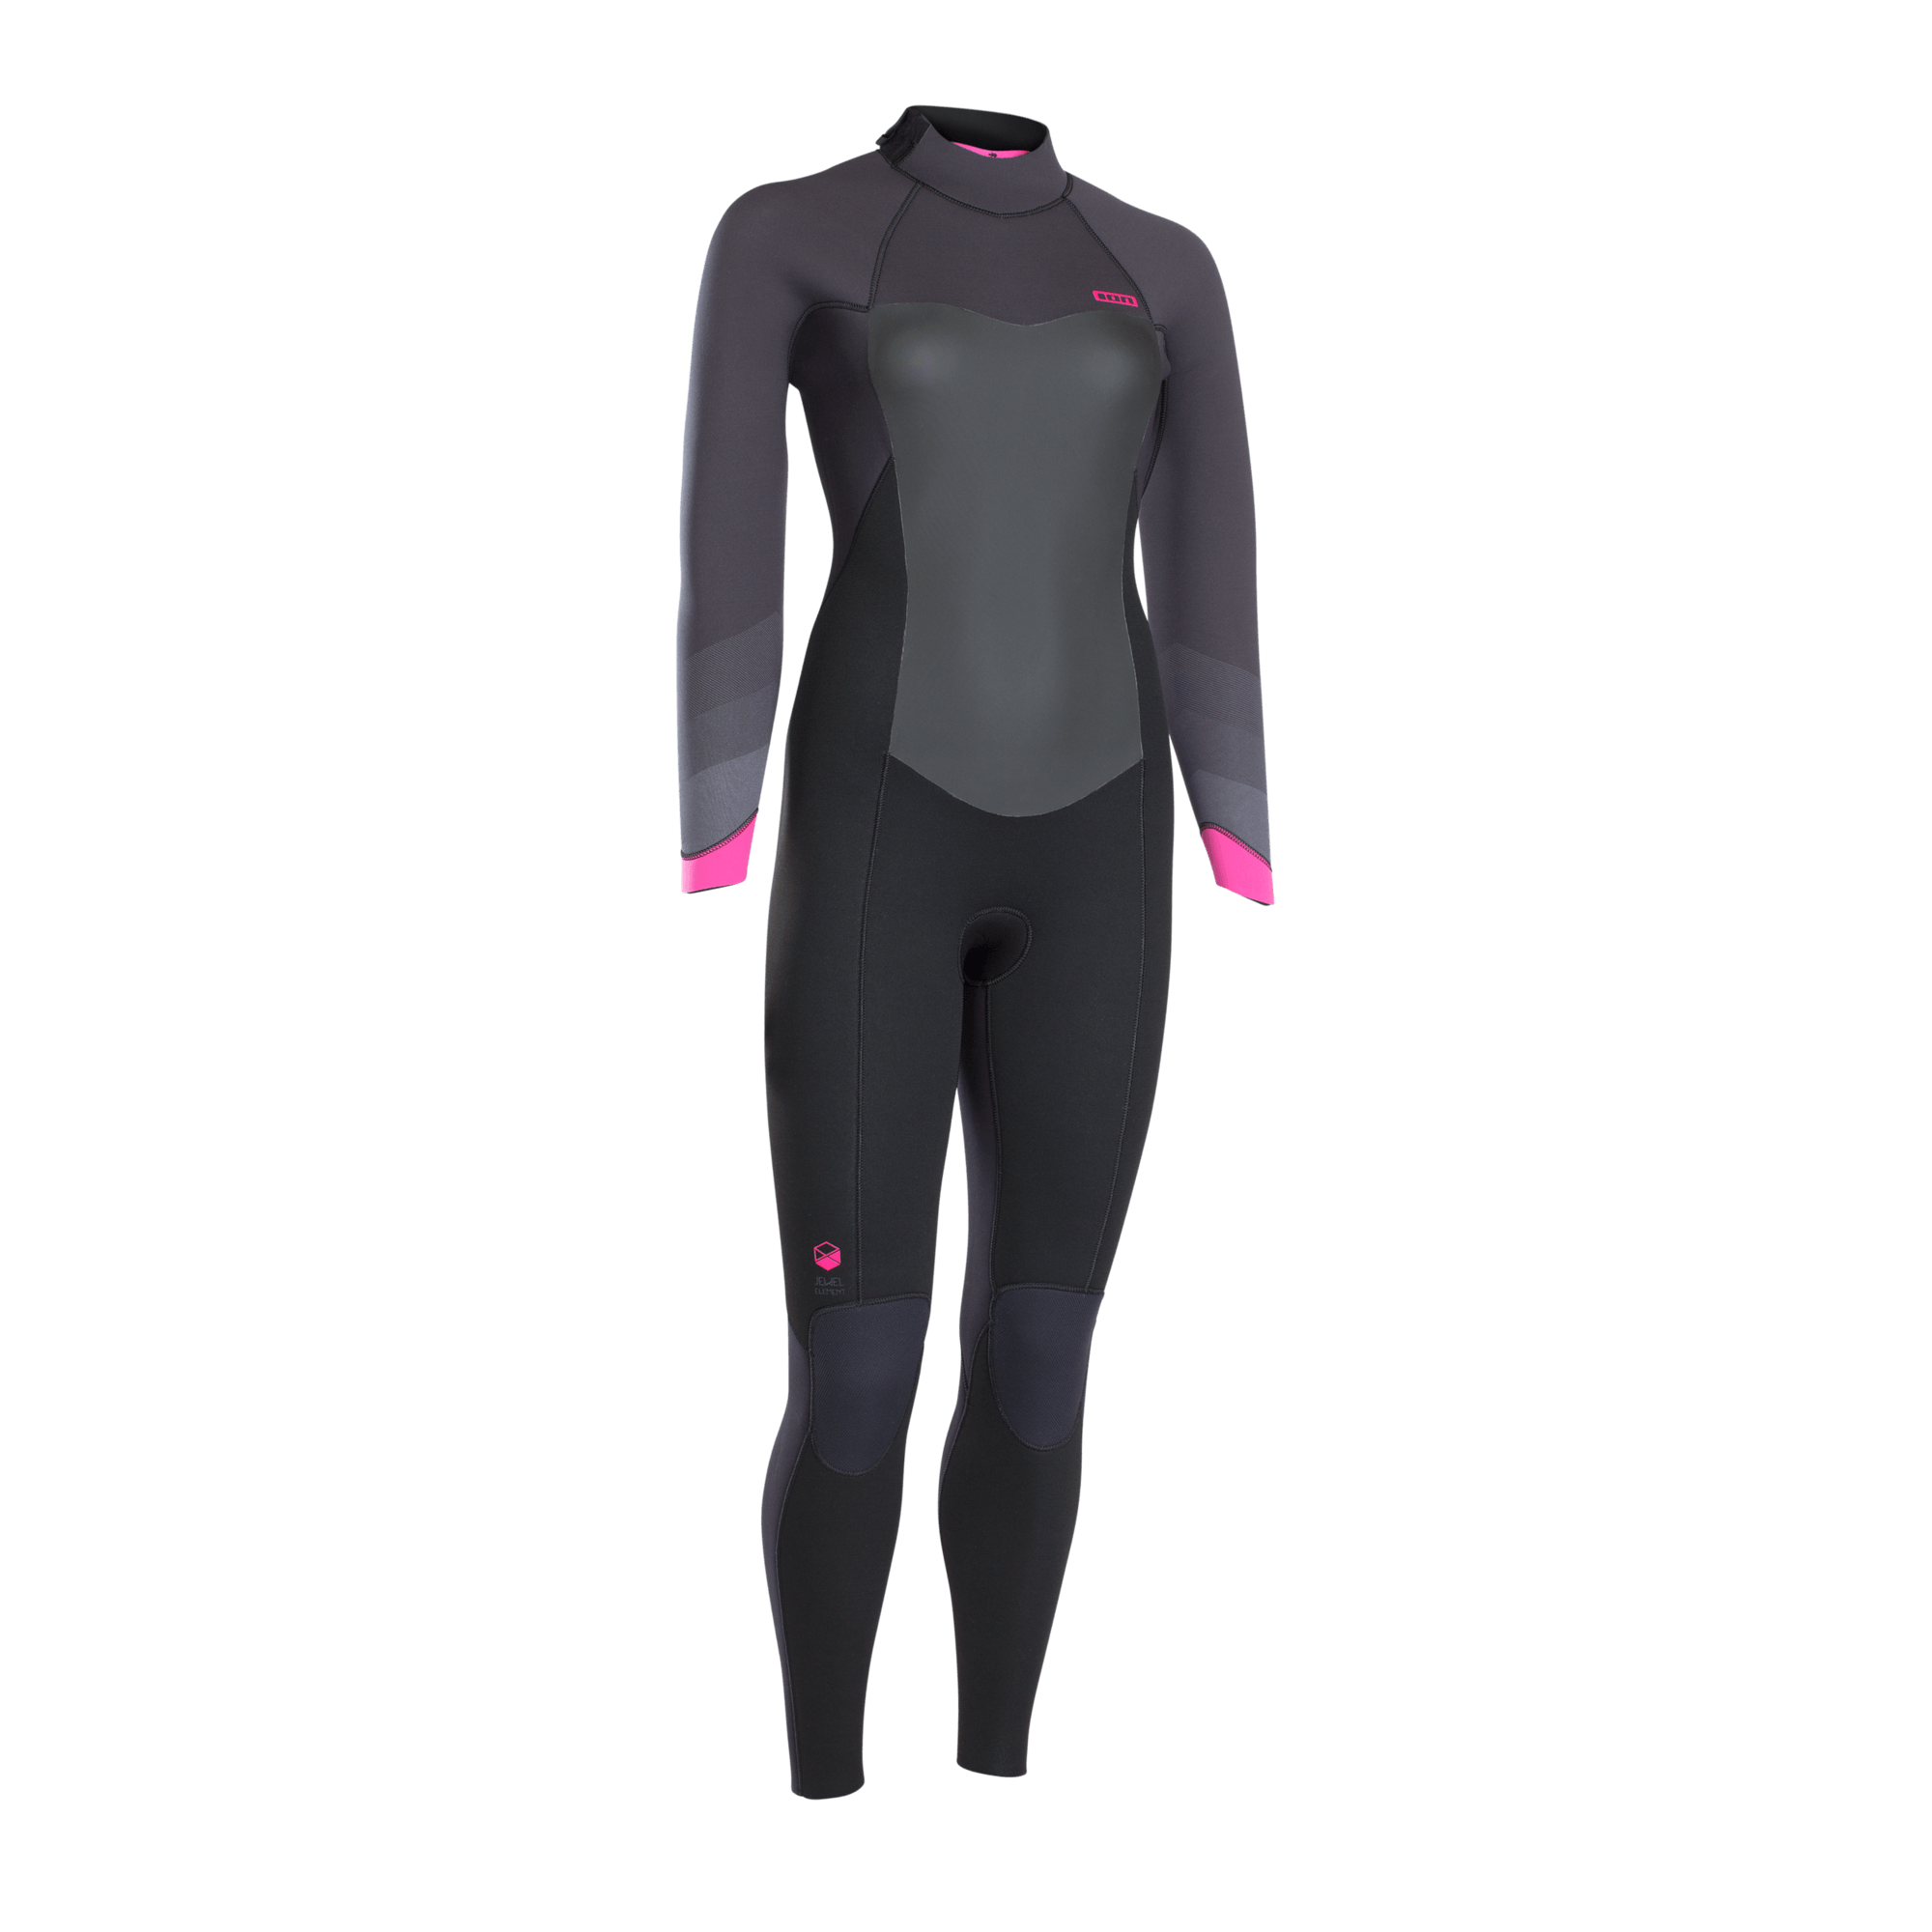 Ion dames wetsuit Jewel Element 5.5